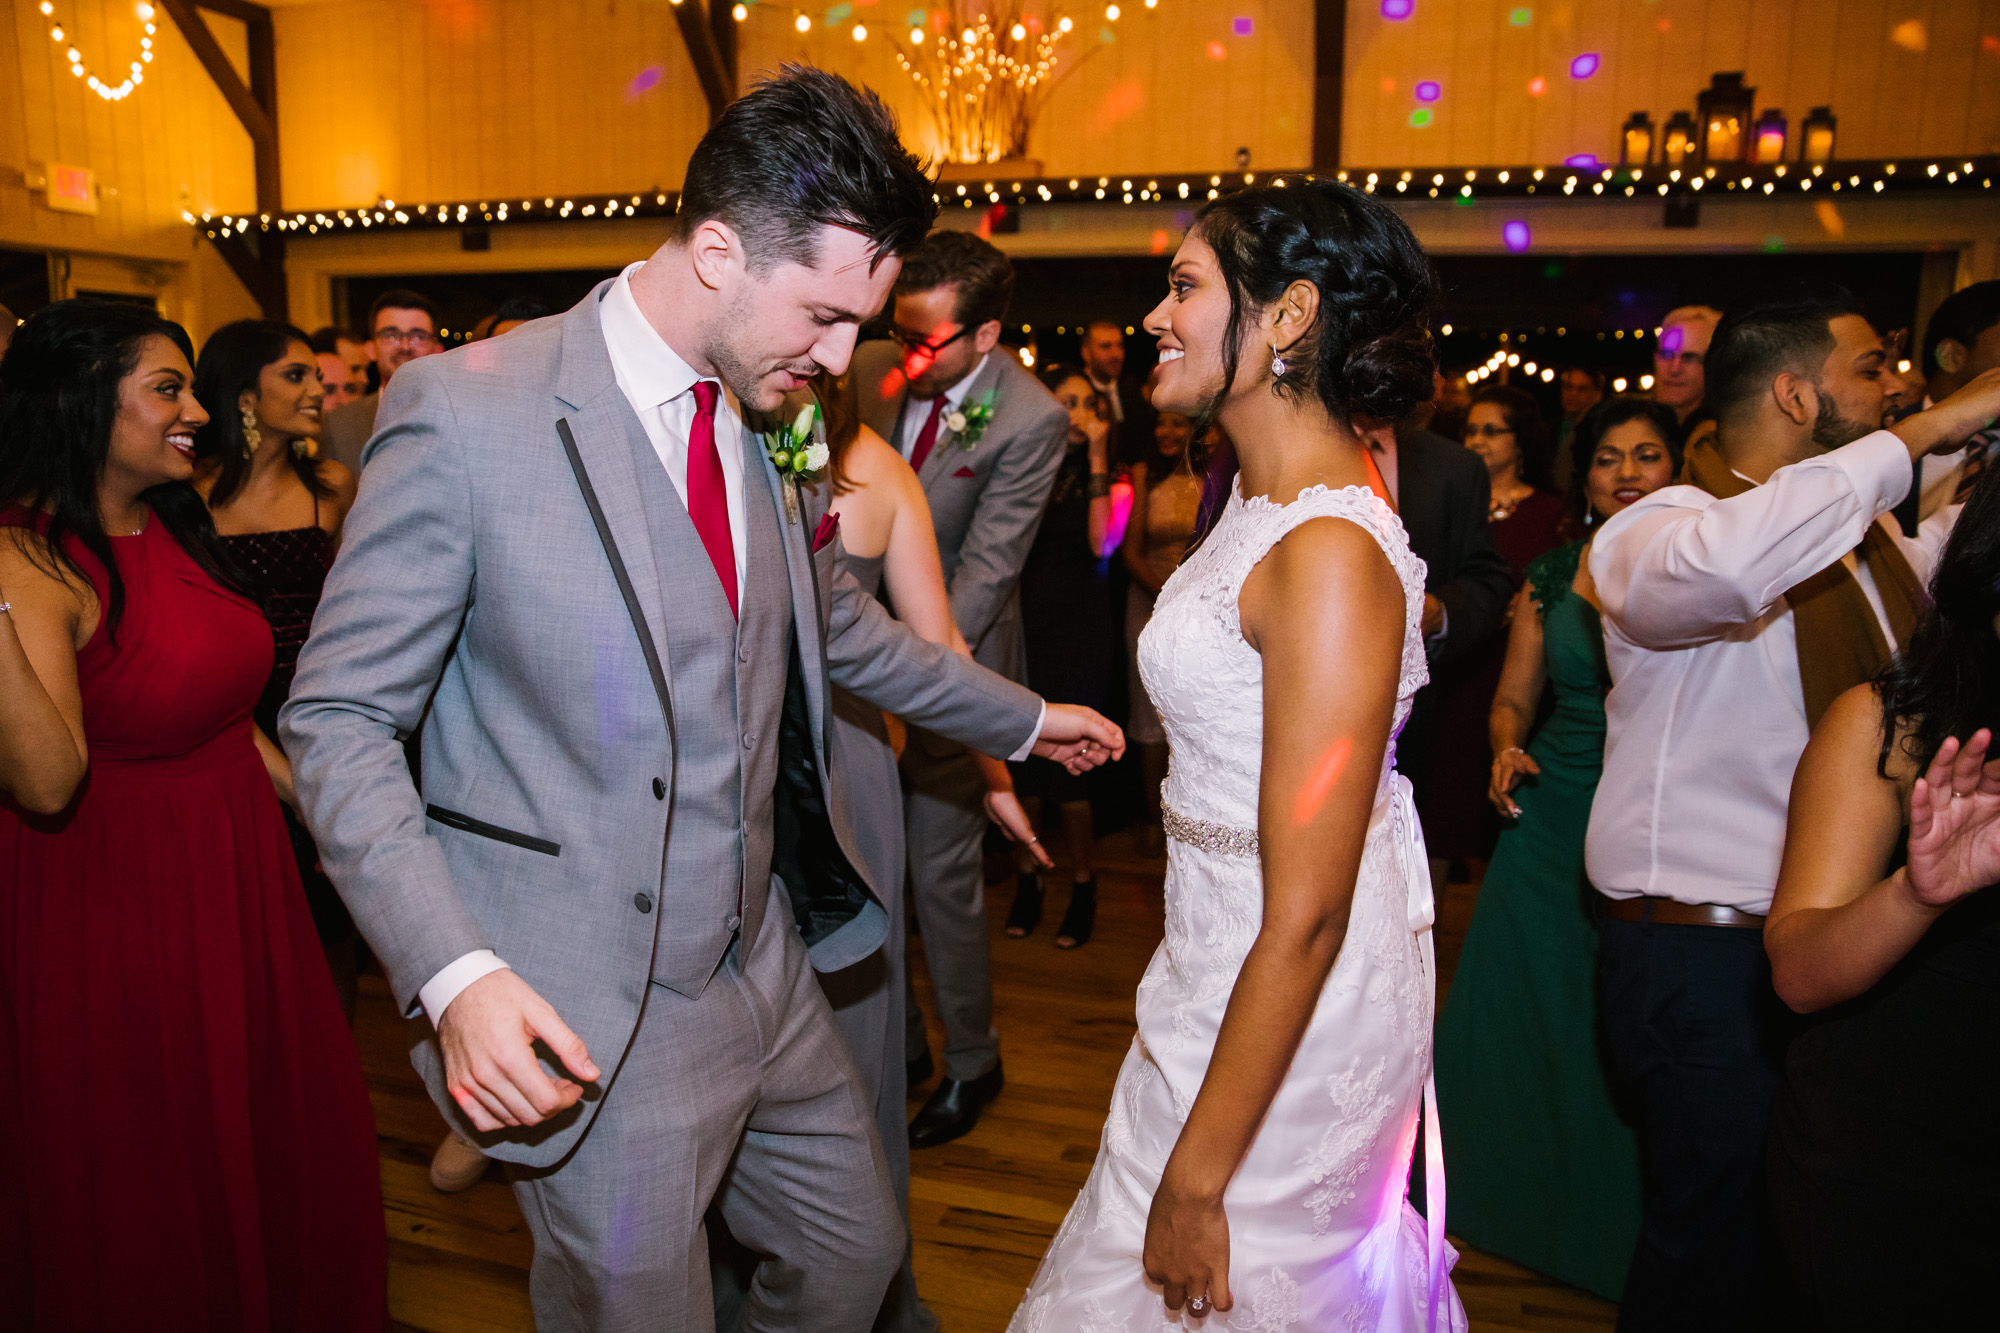 Waynesville NC Wedding Photography | Bride and Groom Dancing with guests under Party Lights